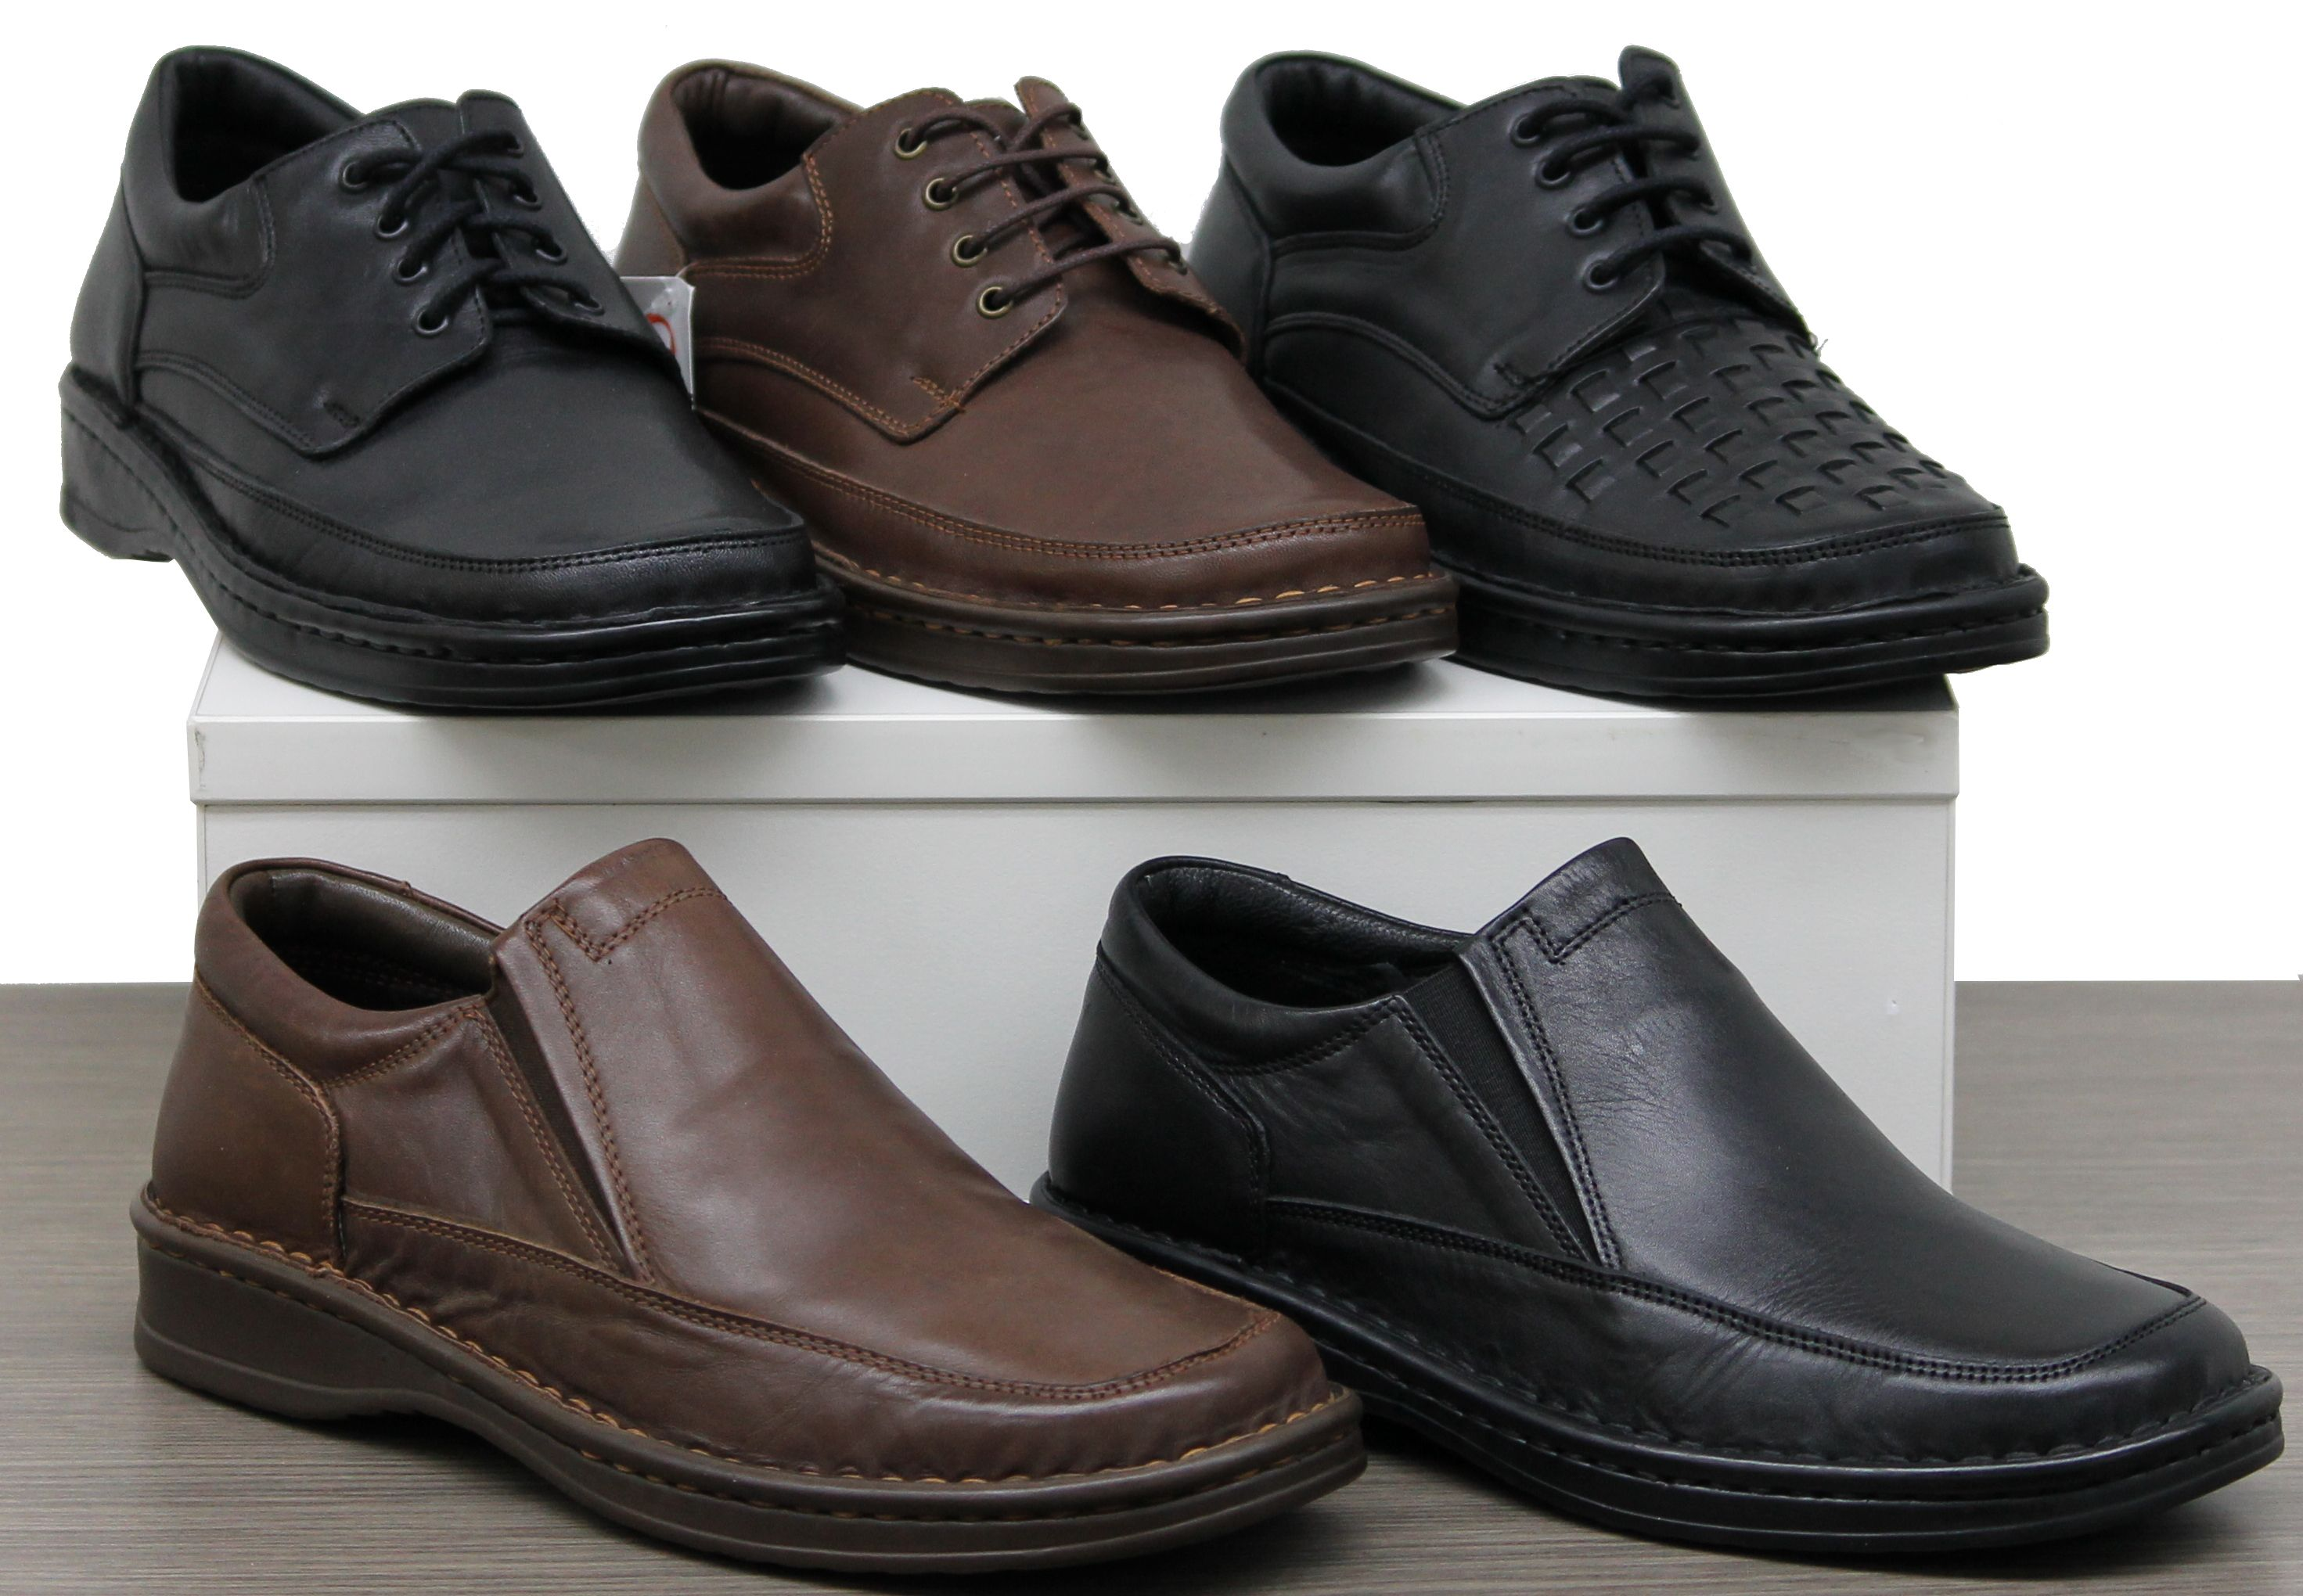 One for the men! #cabello #gilmourscomfortshoes #style #